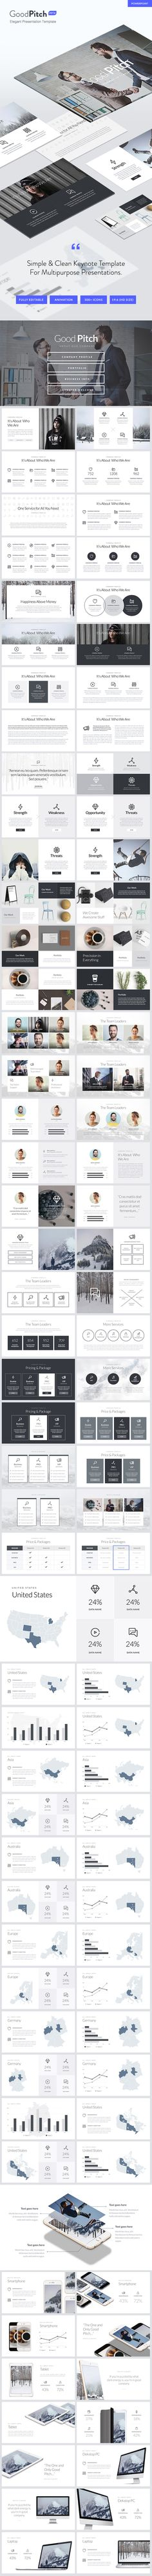 Branding Powerpoint Template  Powerpoint Templates